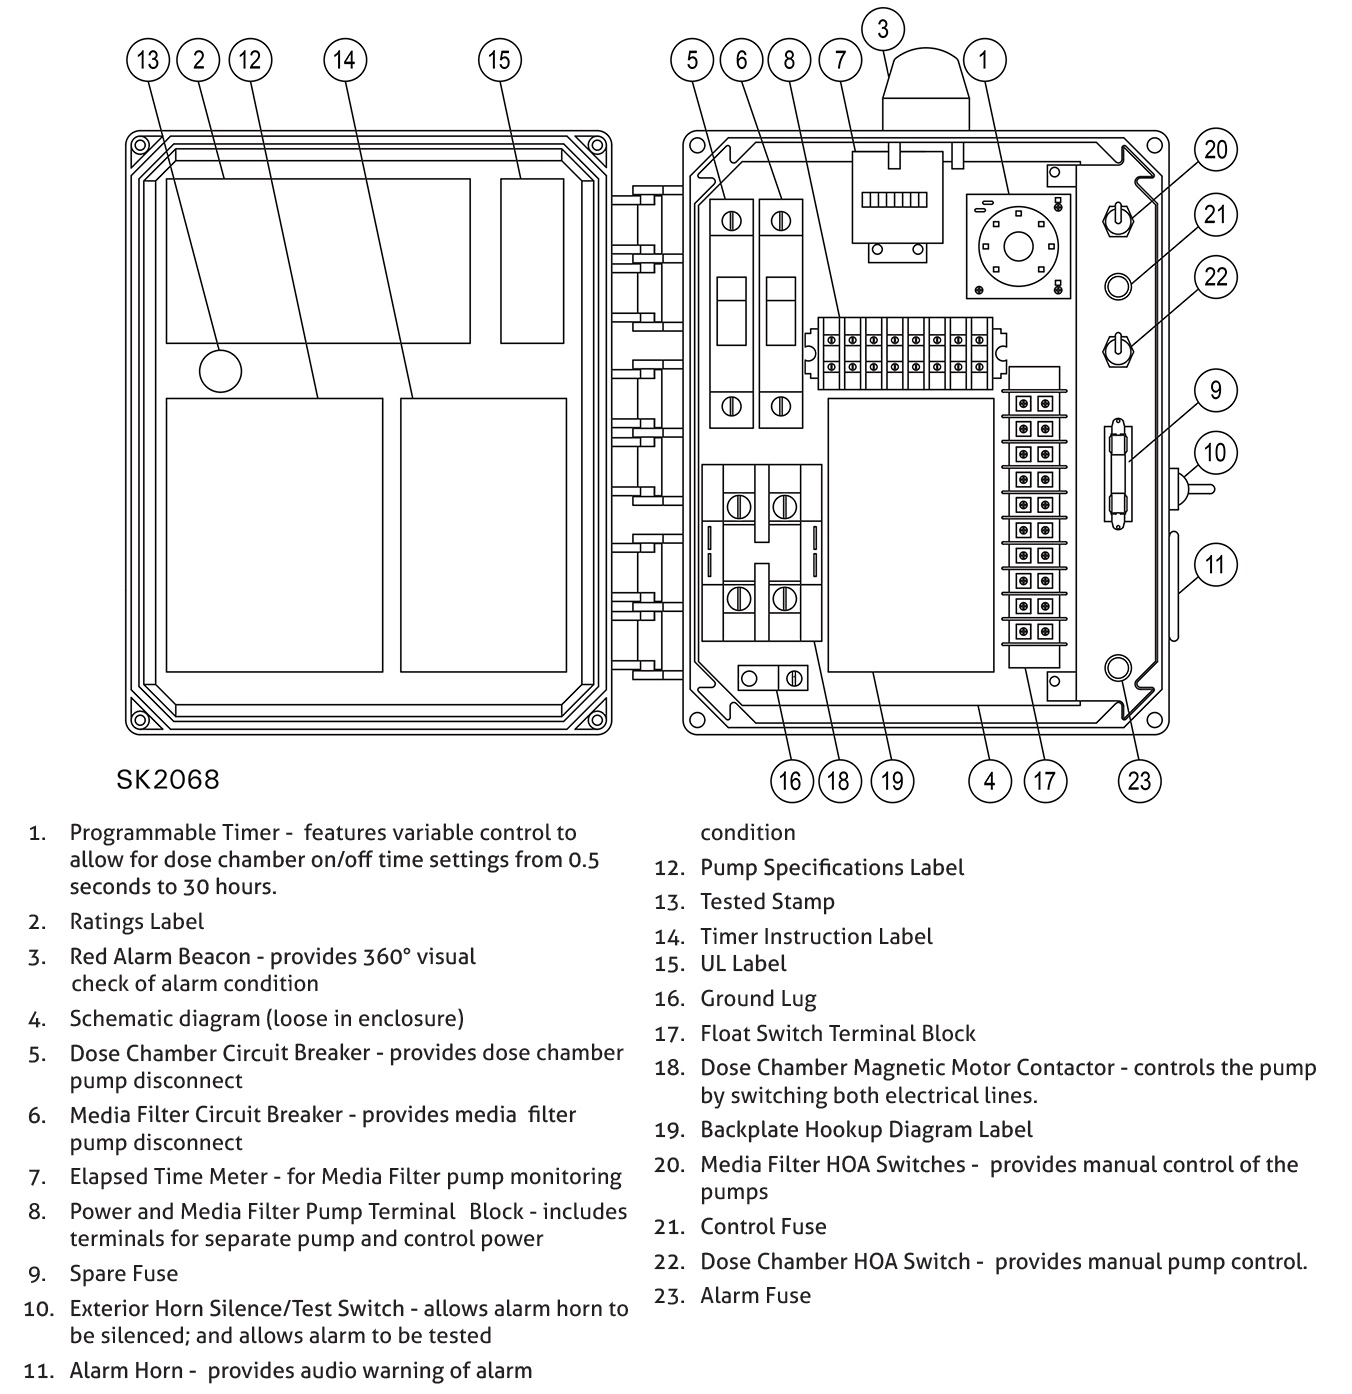 hight resolution of sk2068 dimensional drawing timed dosing simplex duplex pump control panel